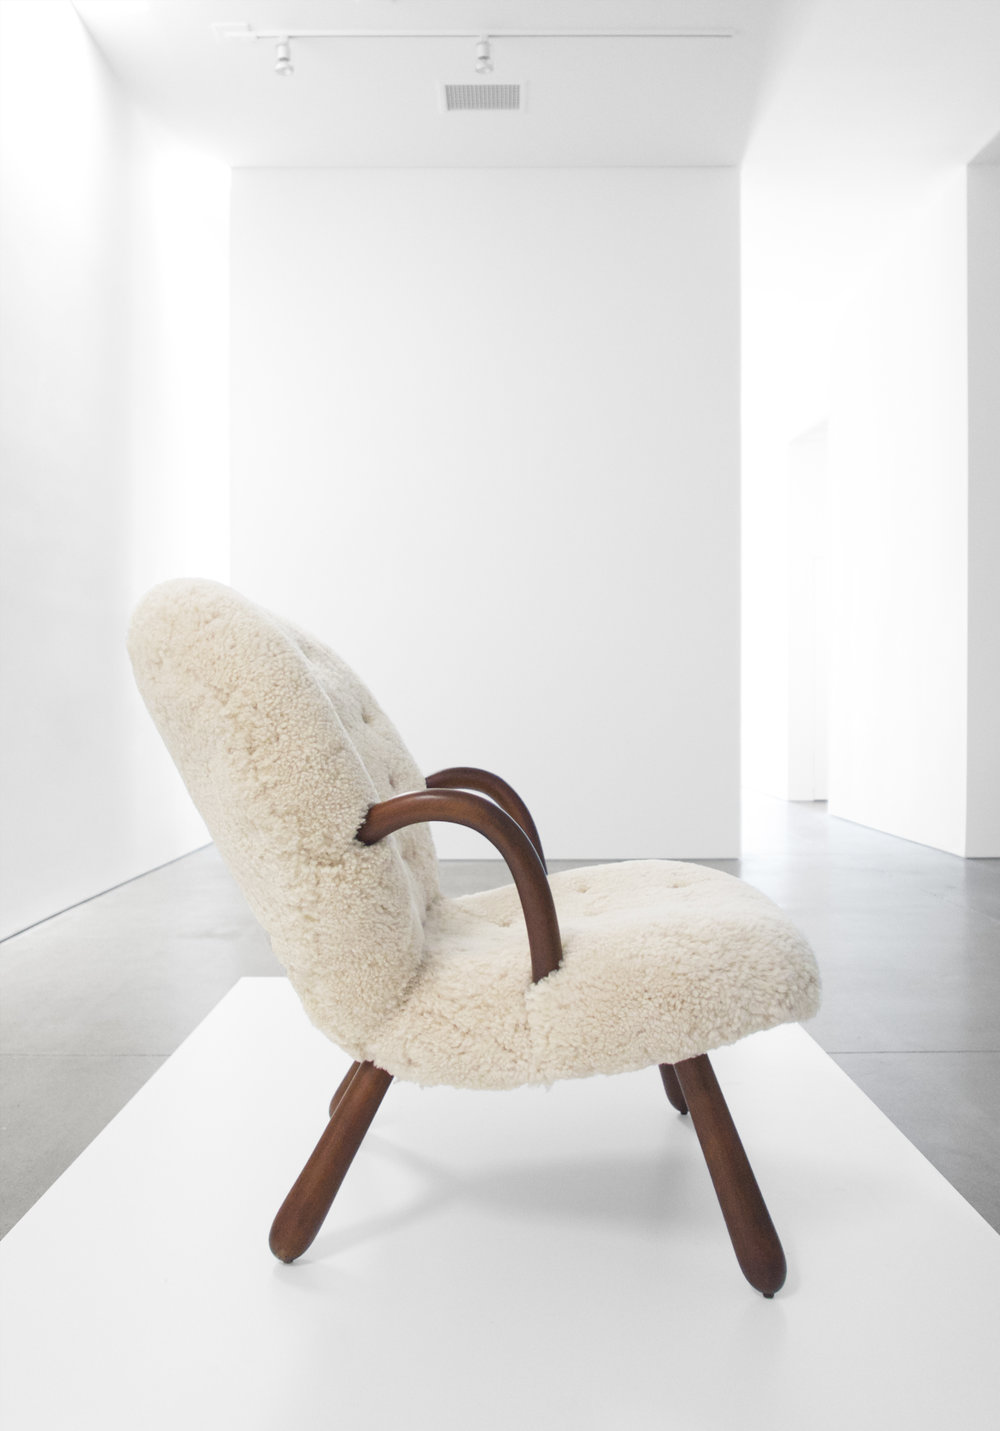 4. Philip Arctander, %22'Clam' Chair,%22 c. 1940s, birchm sheepskin, 32.5H x 26W x 32D inches.jpg